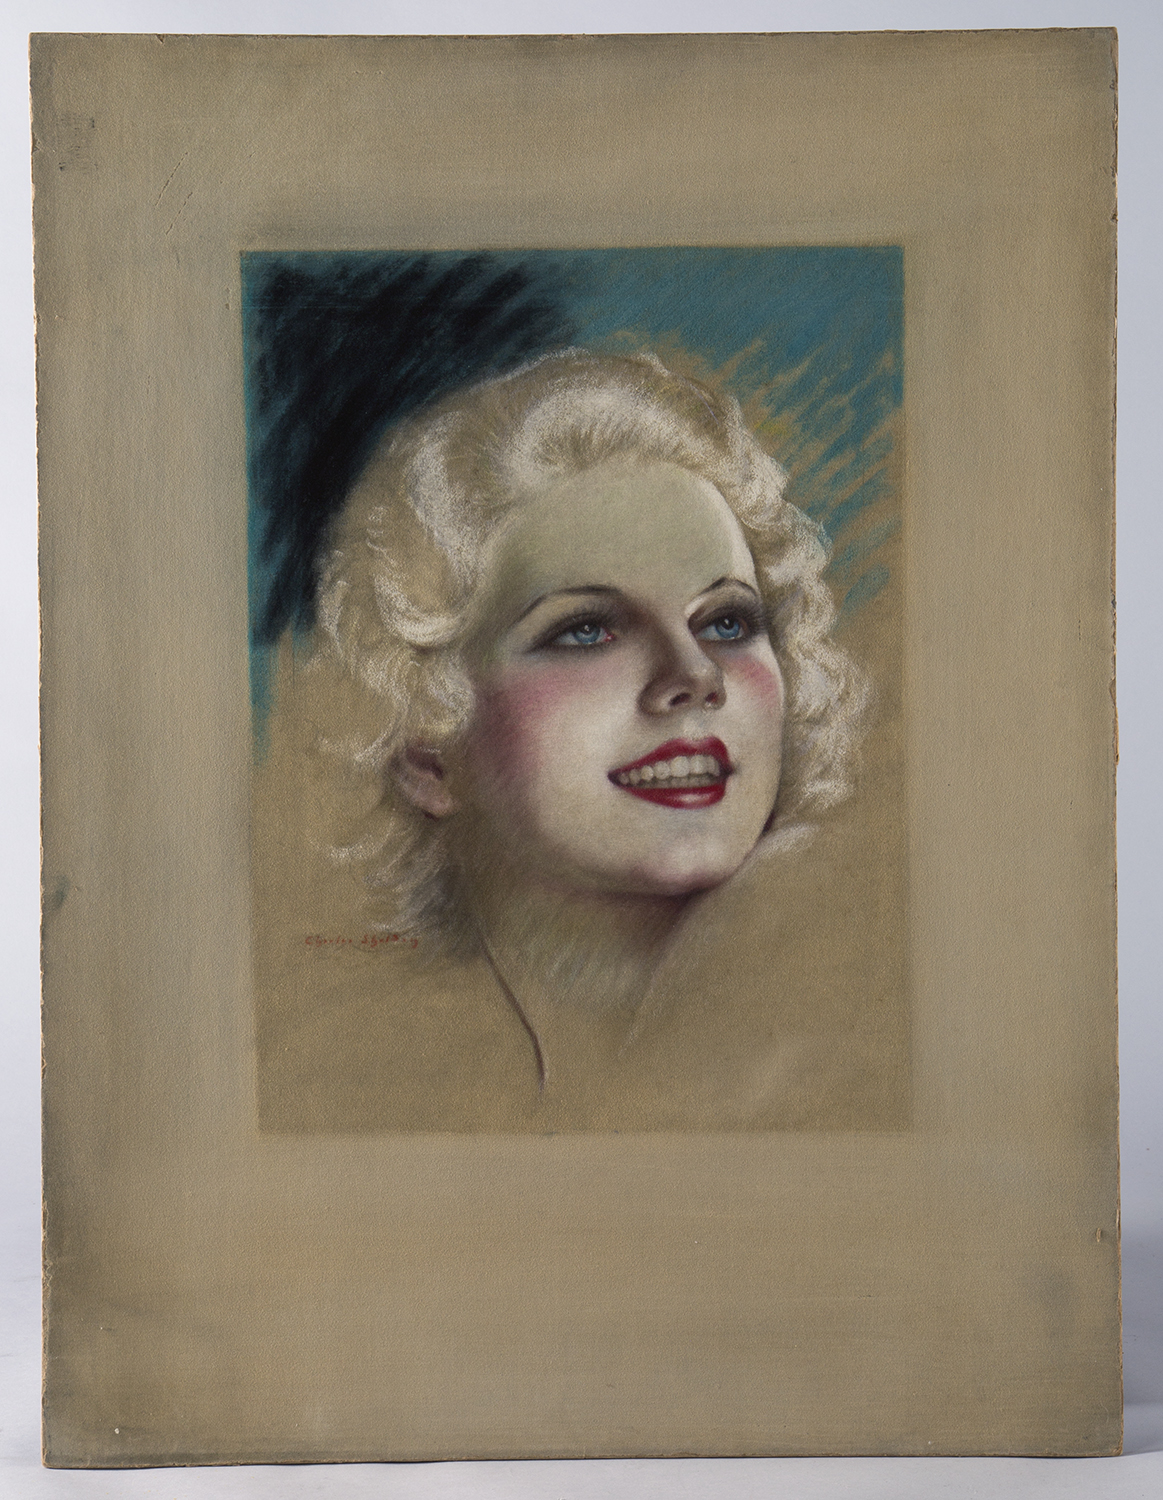 Pastel board with Jean Harlow pastel by Charles Sheldon